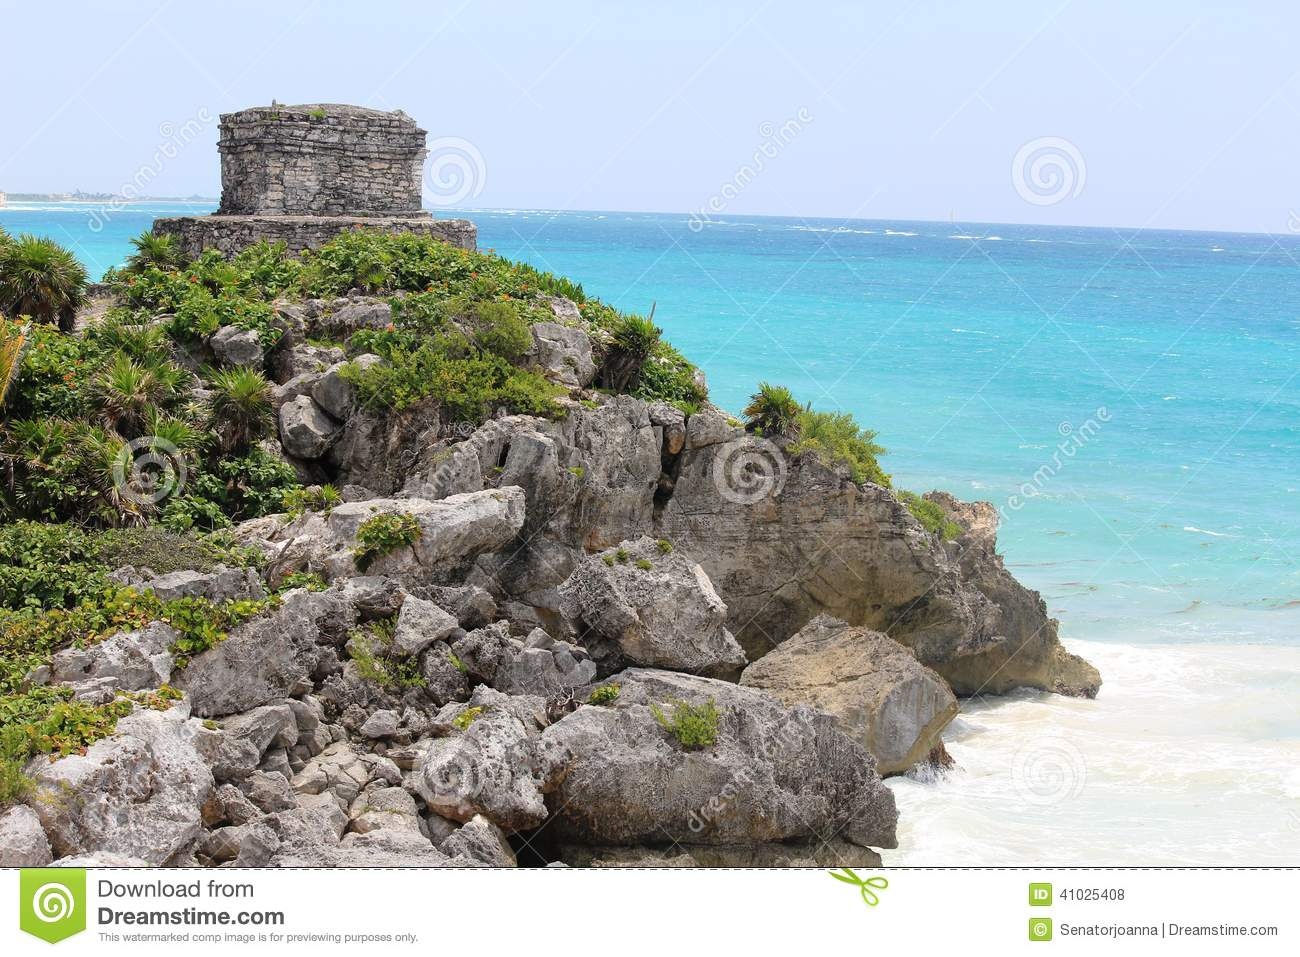 The archeological ruins of Tulum, Mexico